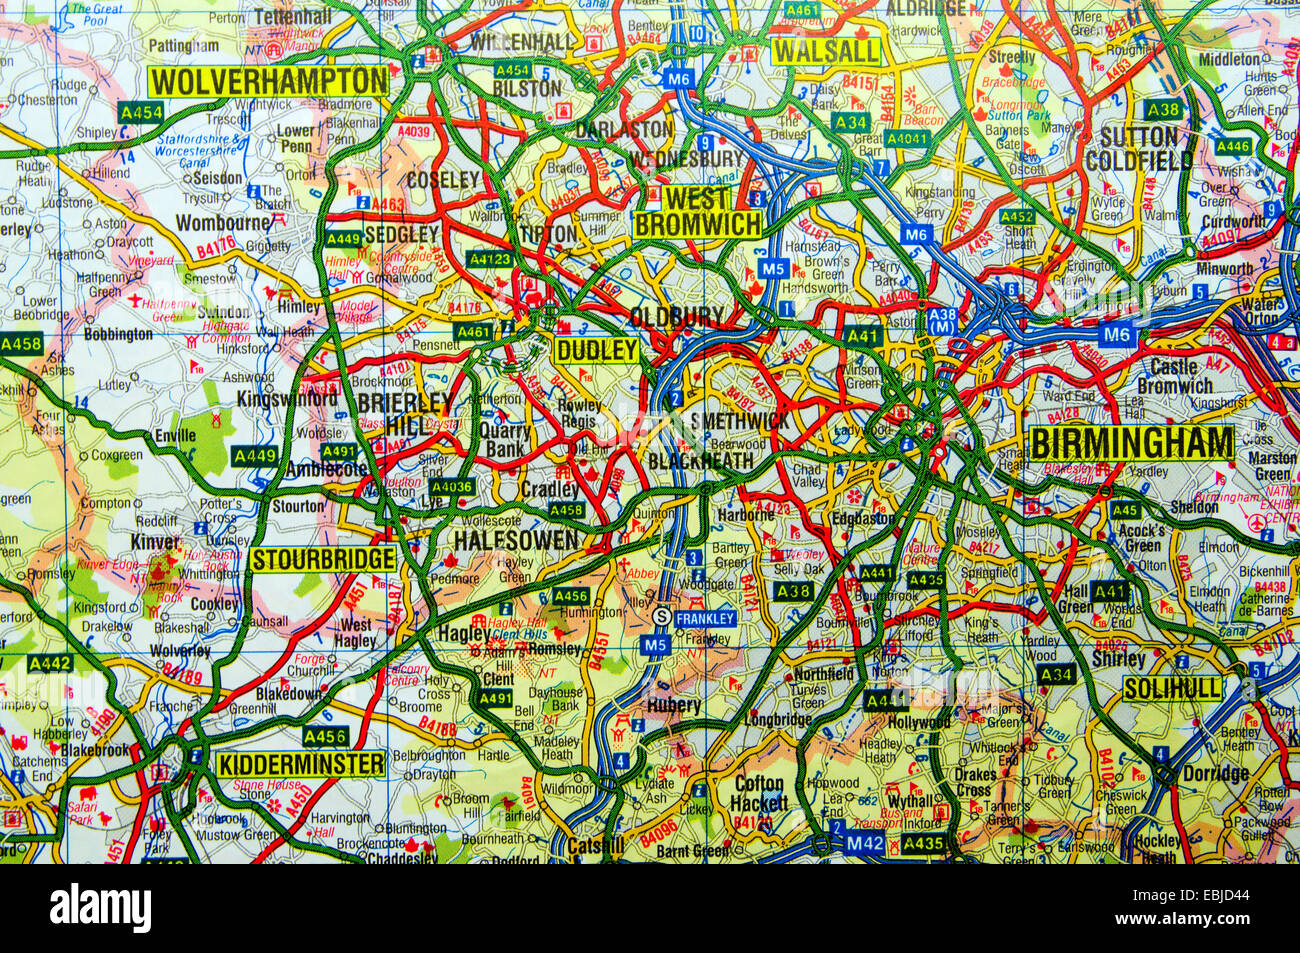 Map Of England Birmingham.Road Map Of Birmingham England Stock Photo 76008132 Alamy